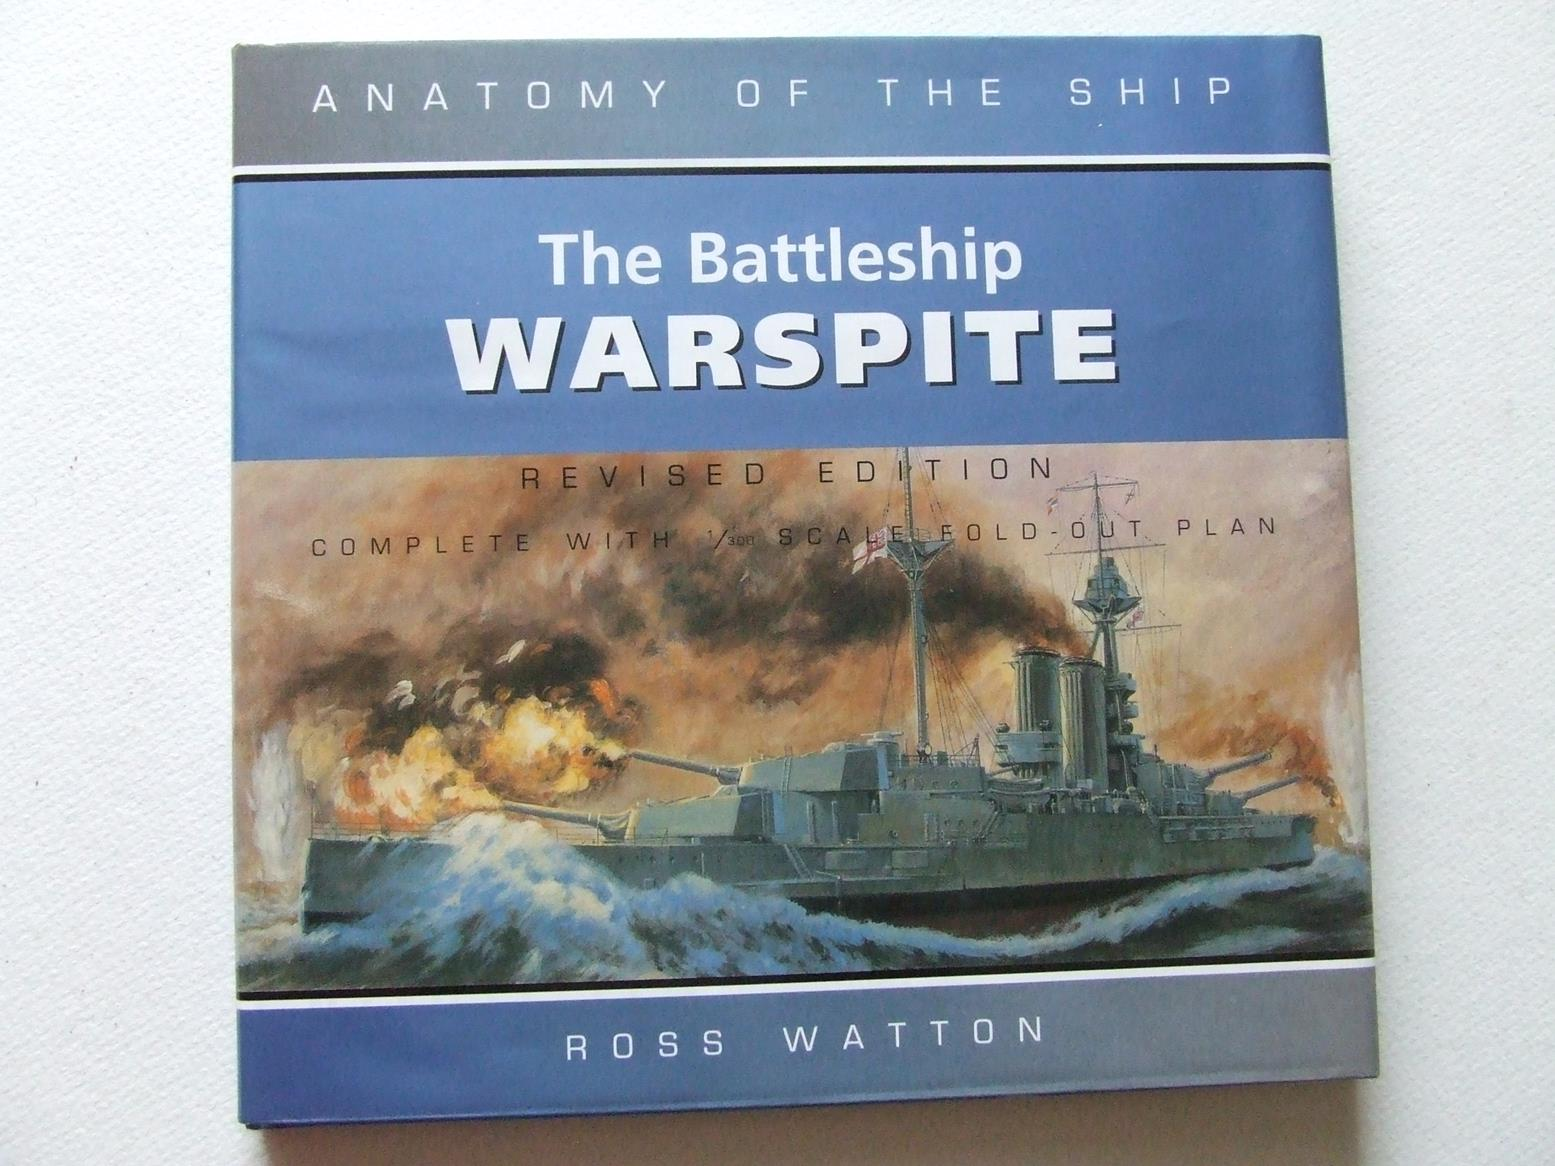 Battleship 'Warspite' [Anatomy of the Ship]